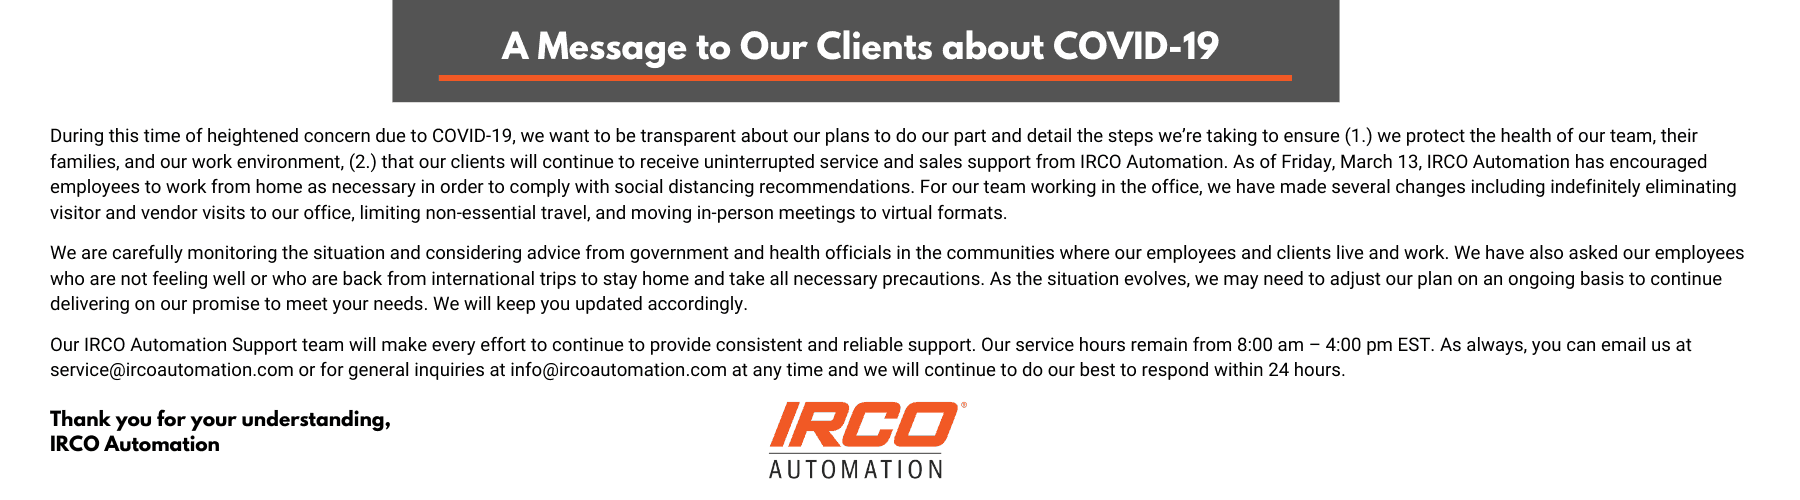 IRCO Automation is open as an essential business through COVID-19 pandemic.